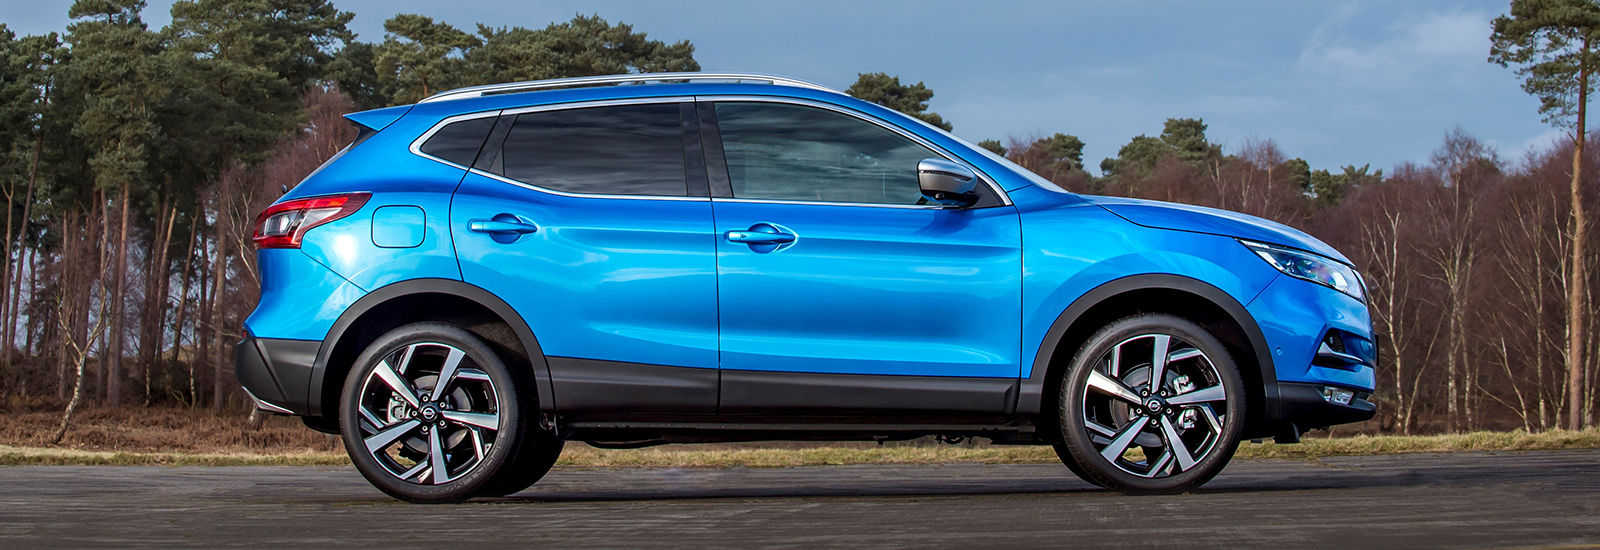 2018 Nissan Qashqai facelift price specs release date | carwow